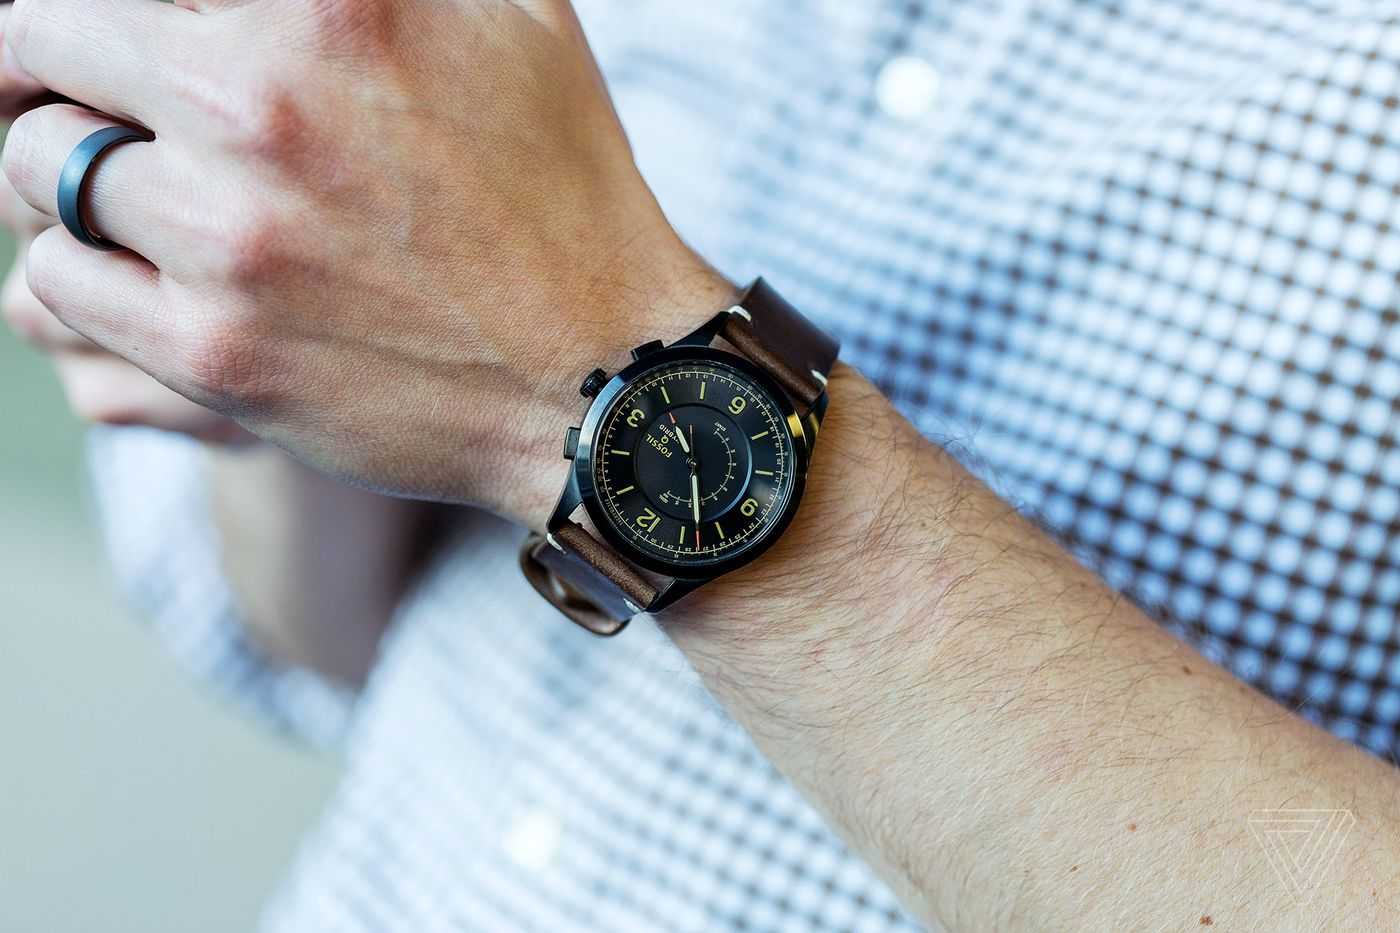 Fossil Q The Verge Second FirstSmart Activist ReviewWatch EWH92DI